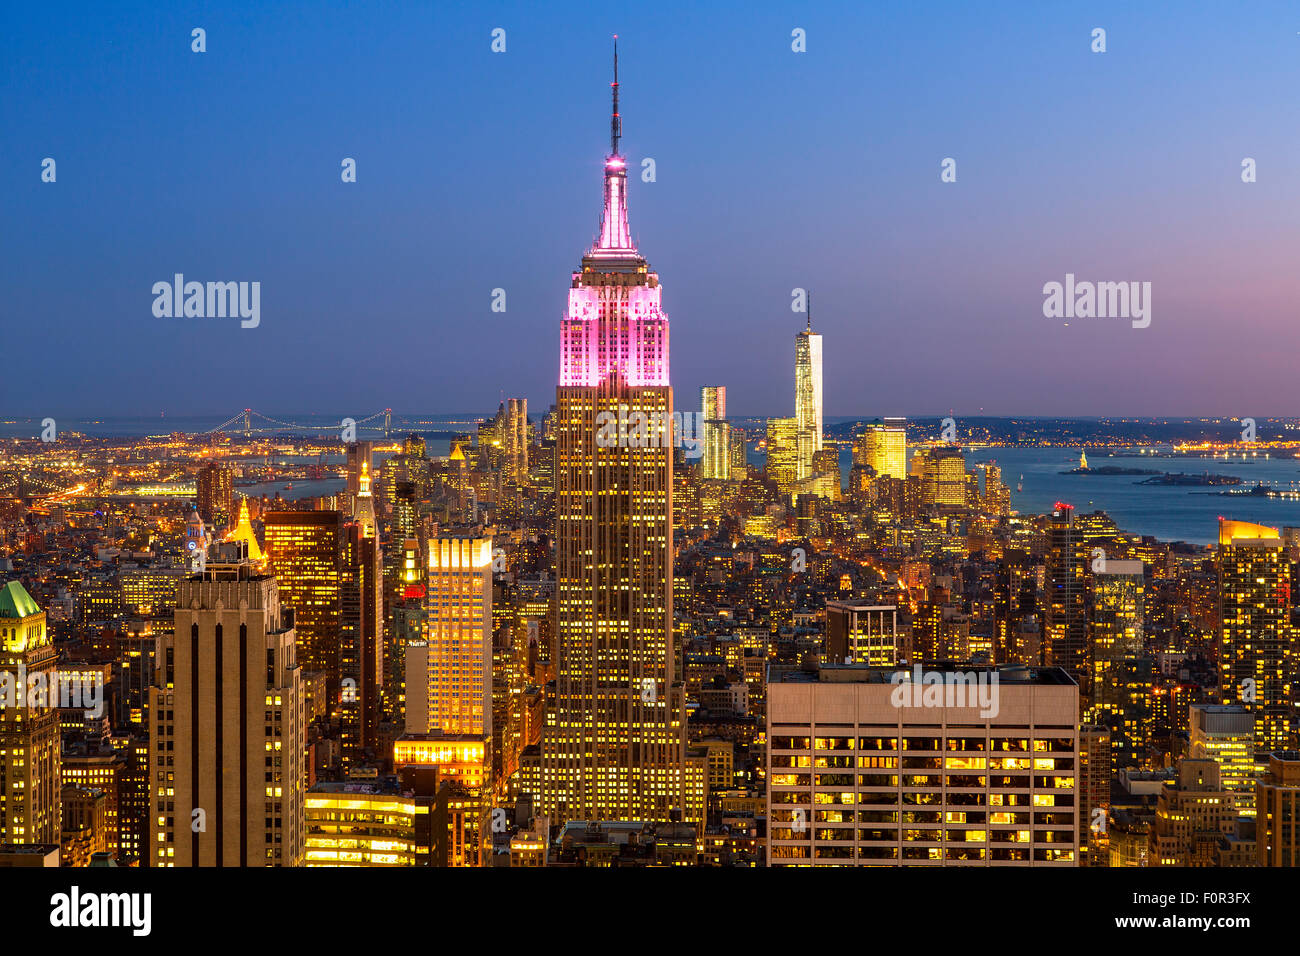 New York City, Empire State Building at Dusk - Stock Image